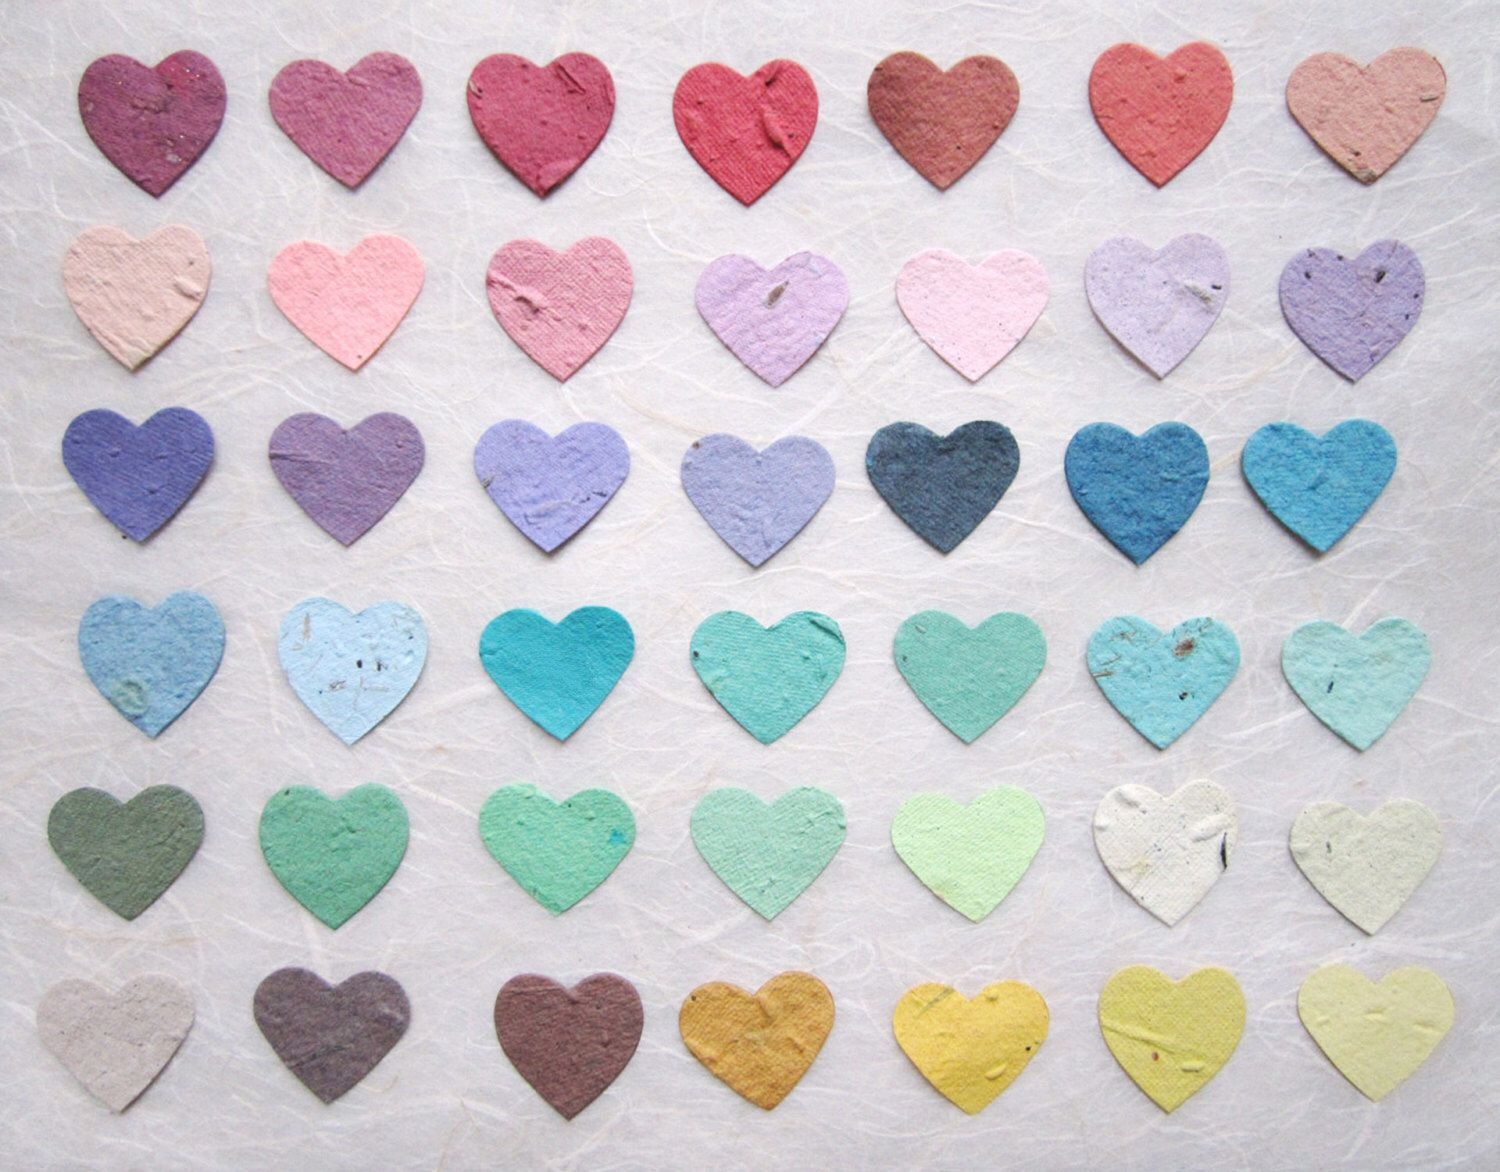 200 Plantable Wedding Favors Hearts Seed Paper Confetti Hearts